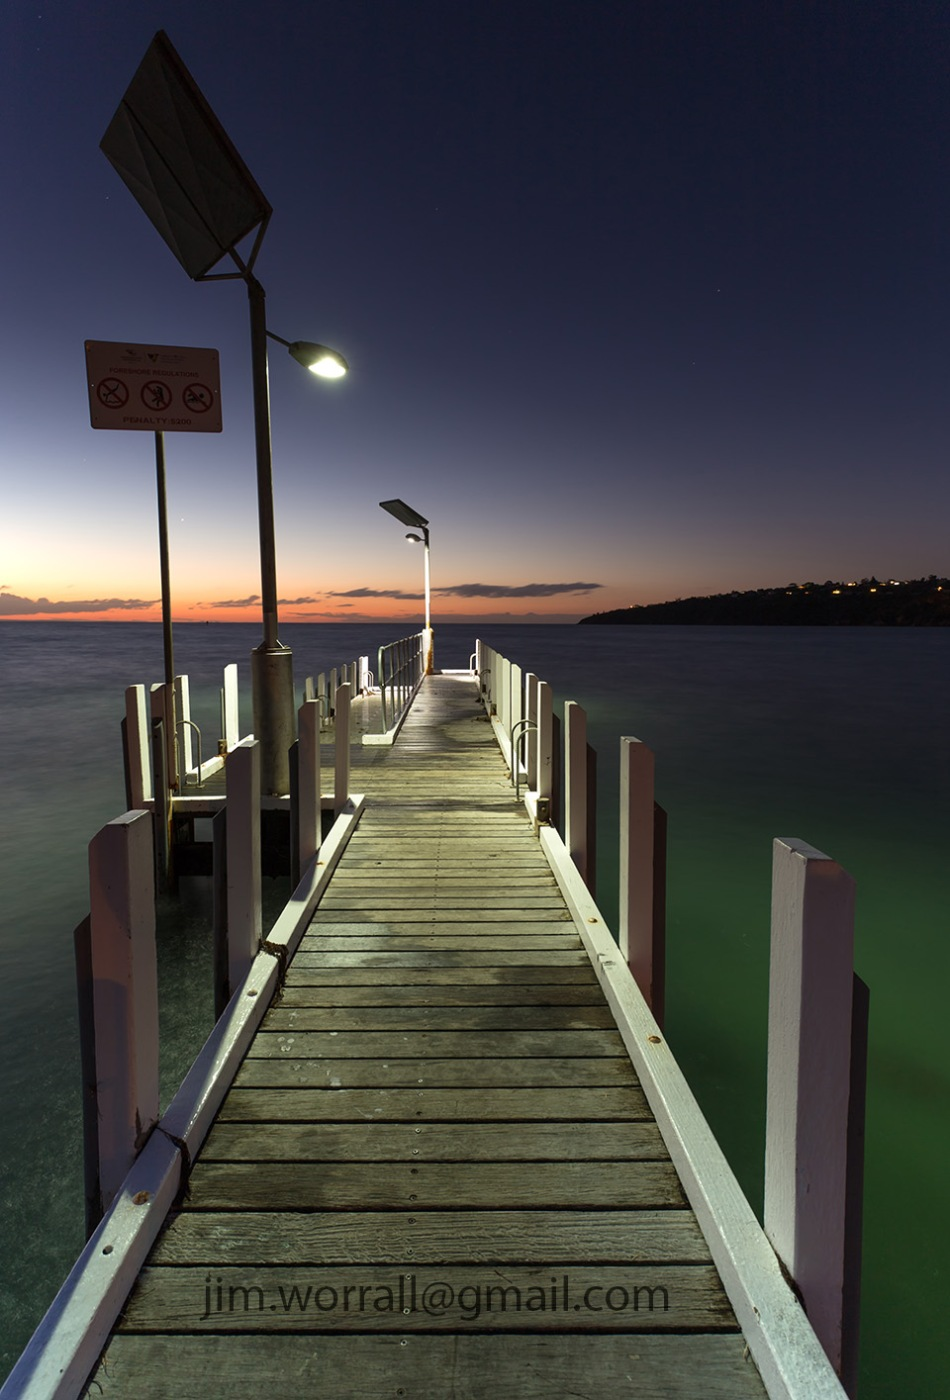 jim worrall, port phillip bay, mornington peninsula, jetty, pier